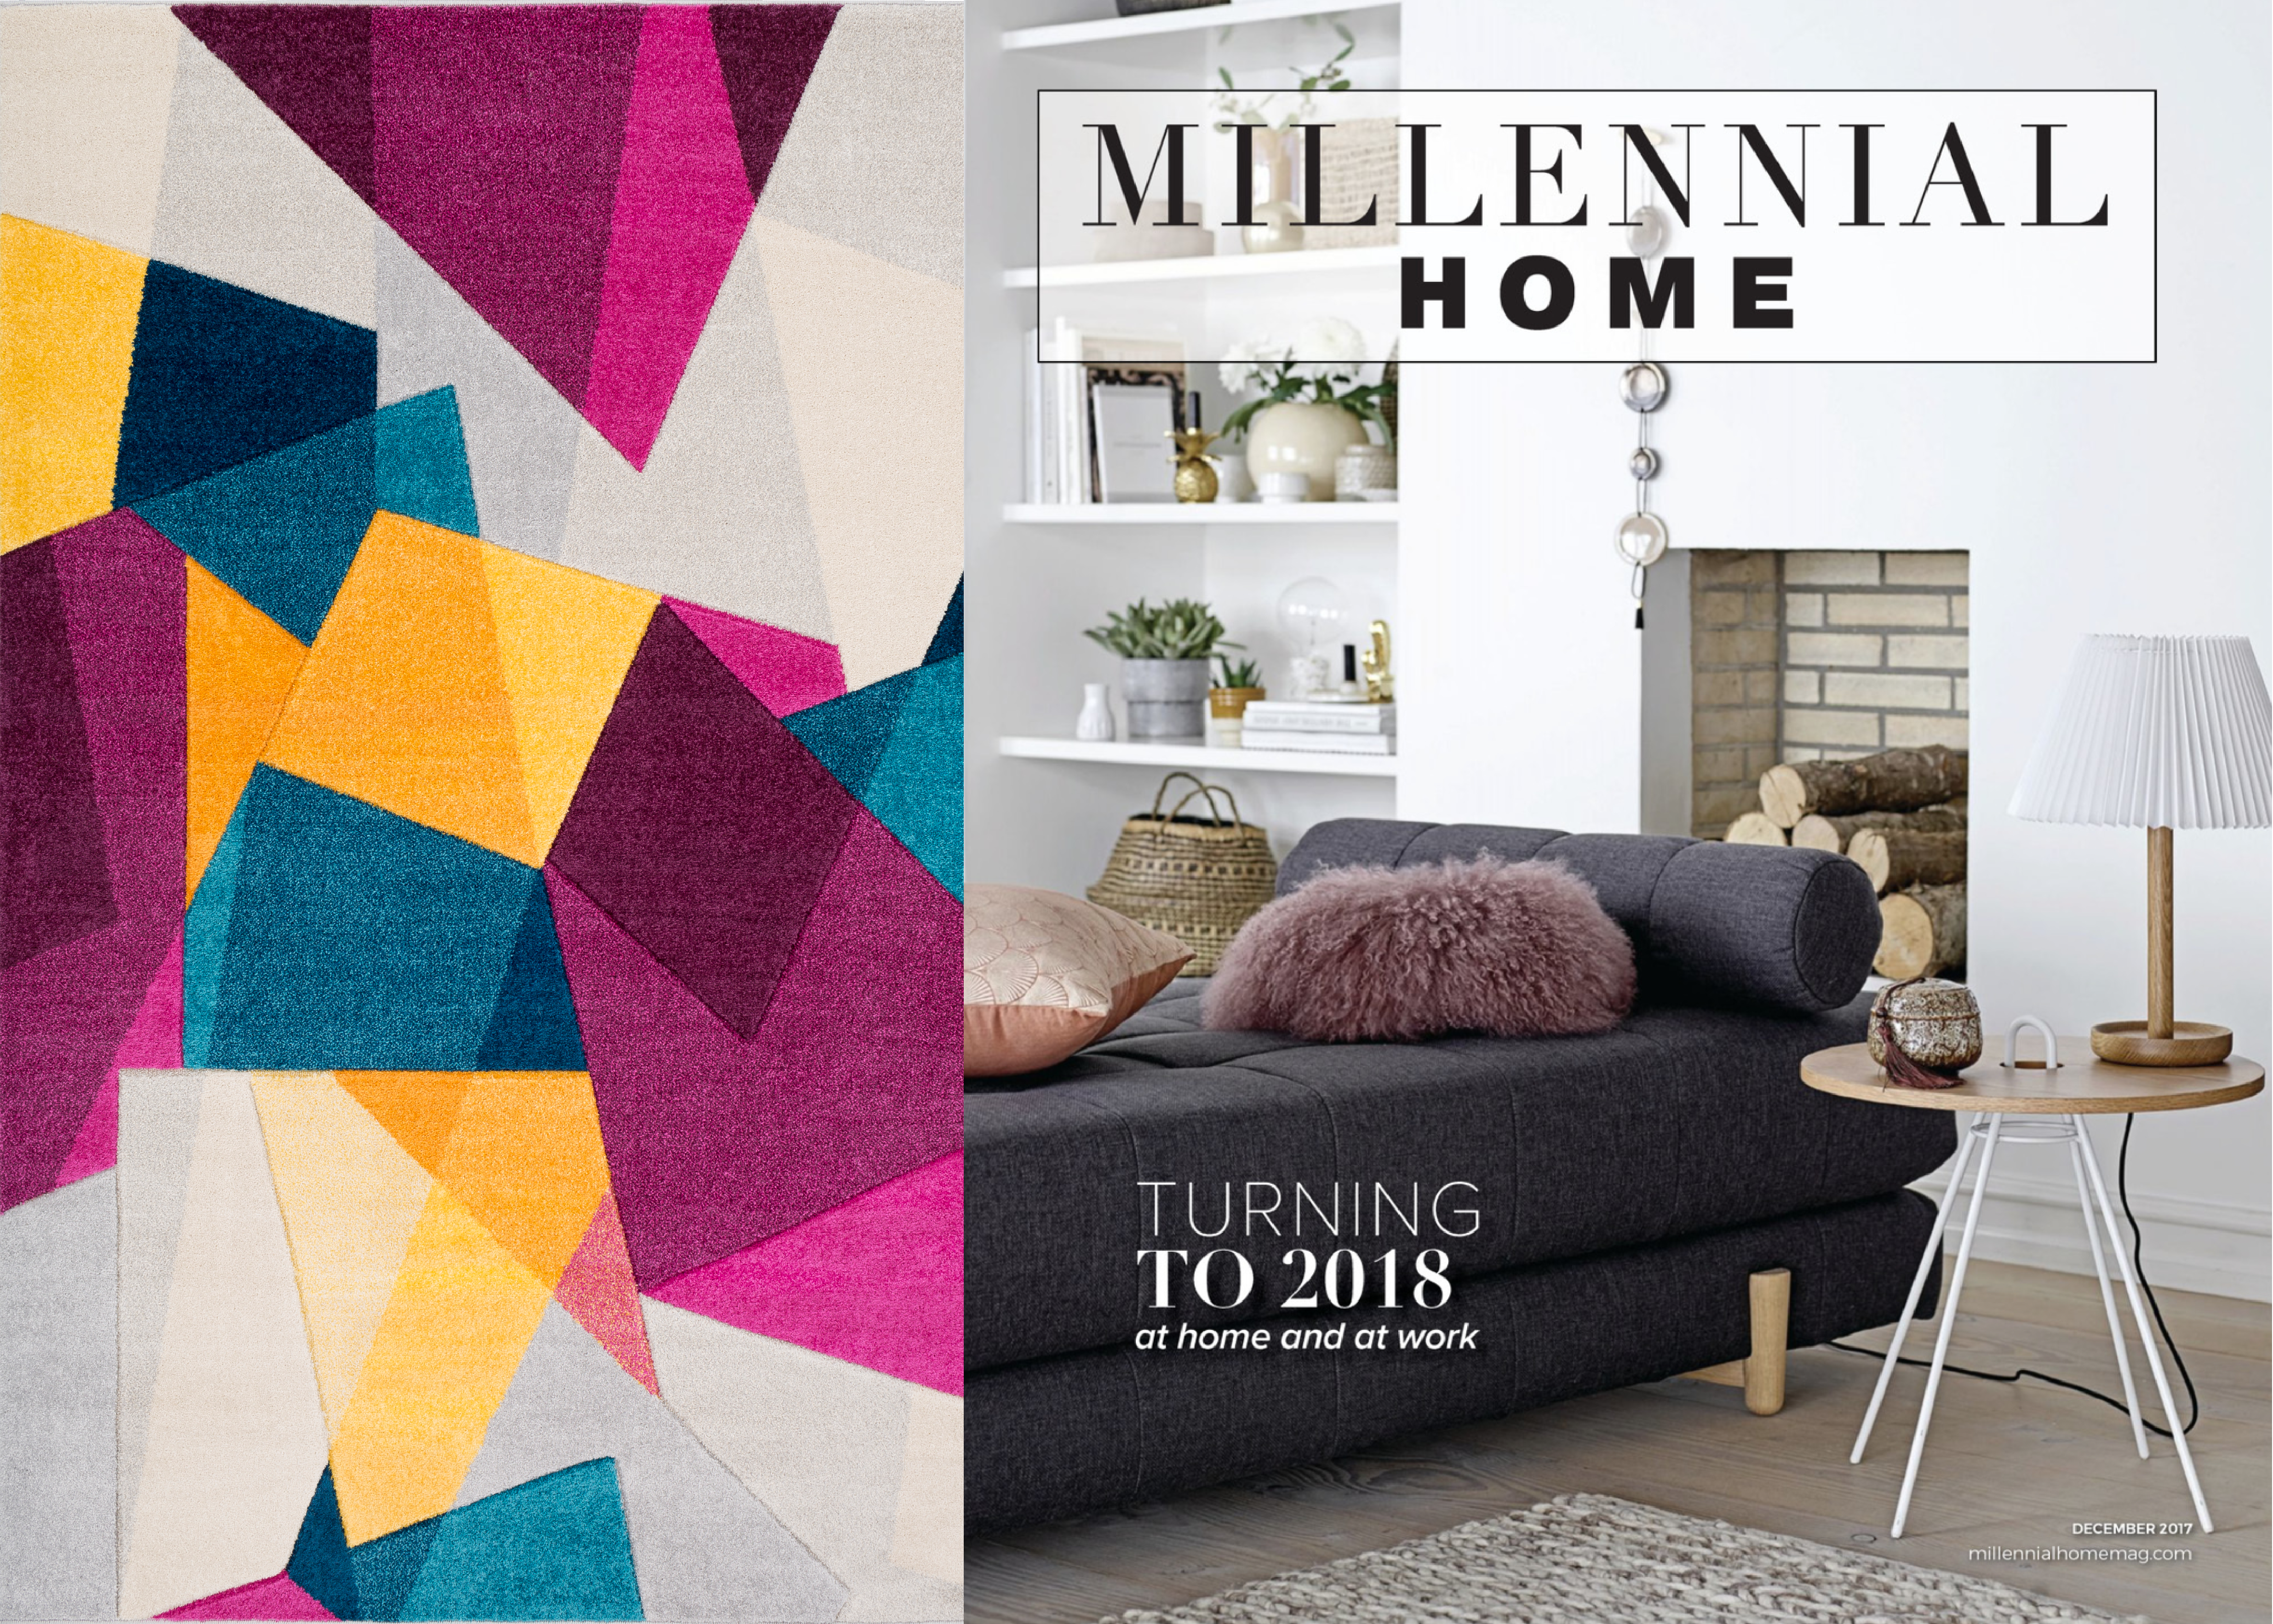 Millennial Home S December 2018 Issue Highlights The Saturated Jewel Tones That Eal To Generation Including Surya Machine Made Rio Rug